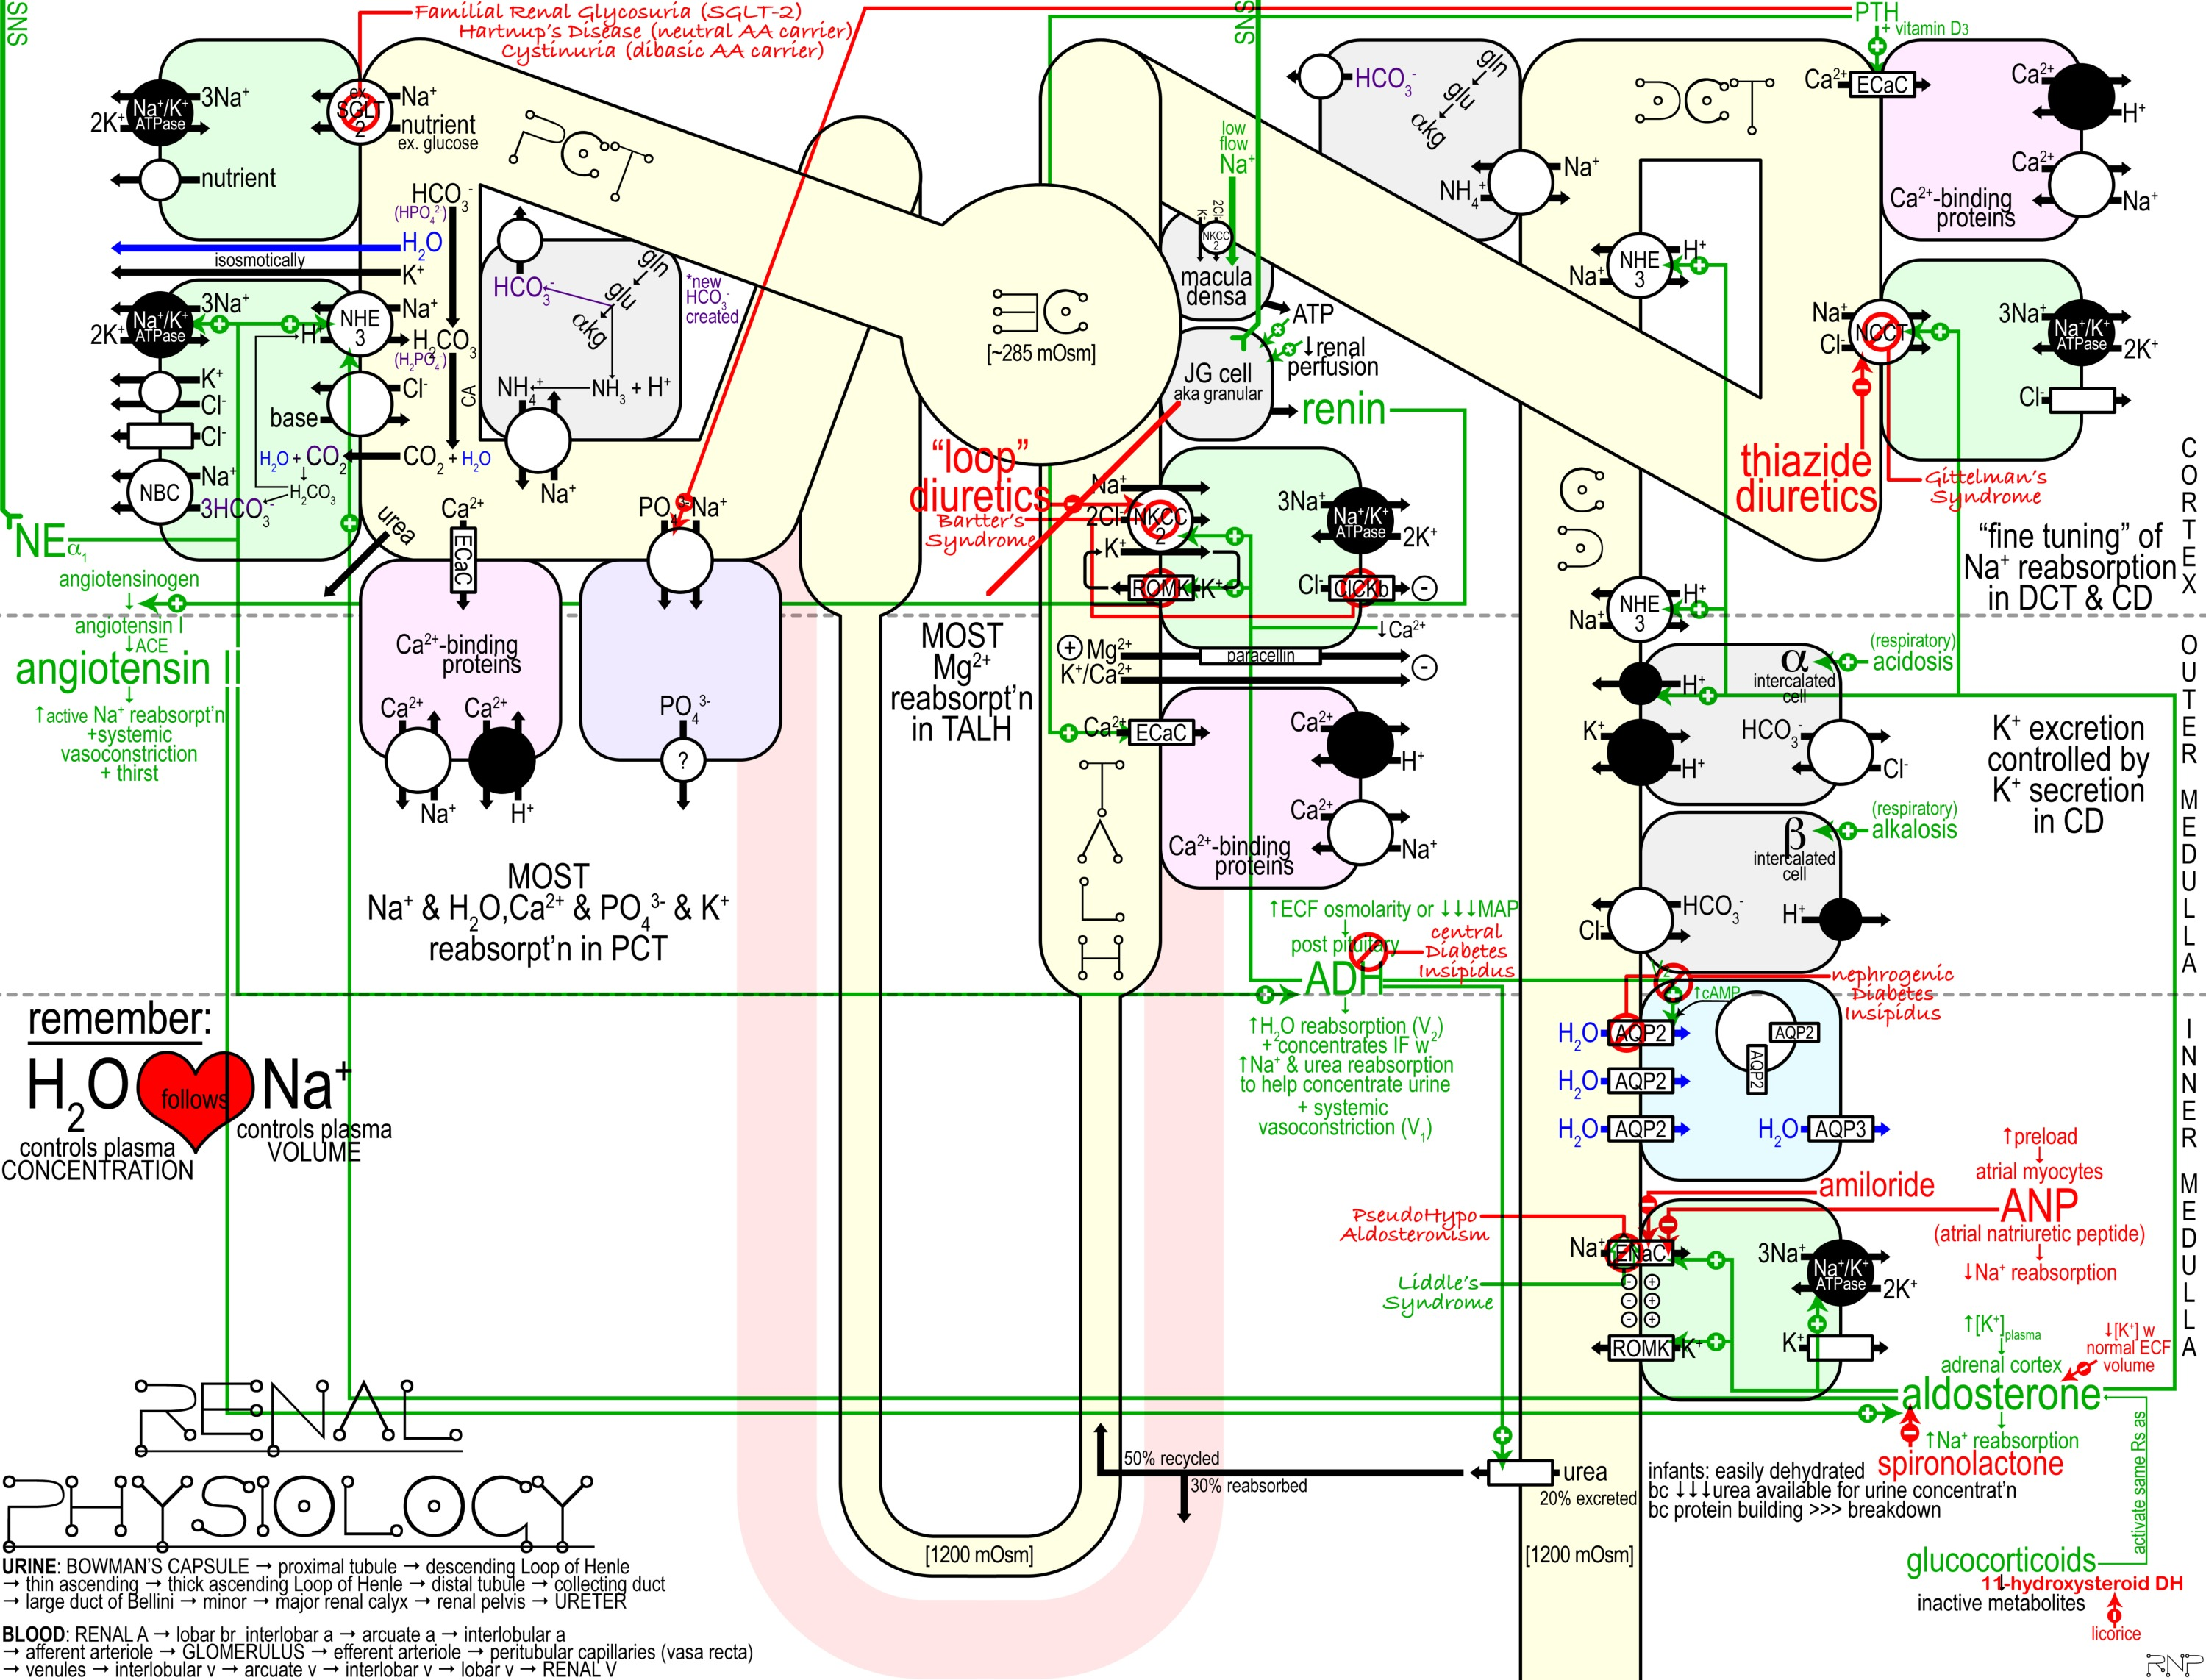 Overview of Renal Physiology Schematic